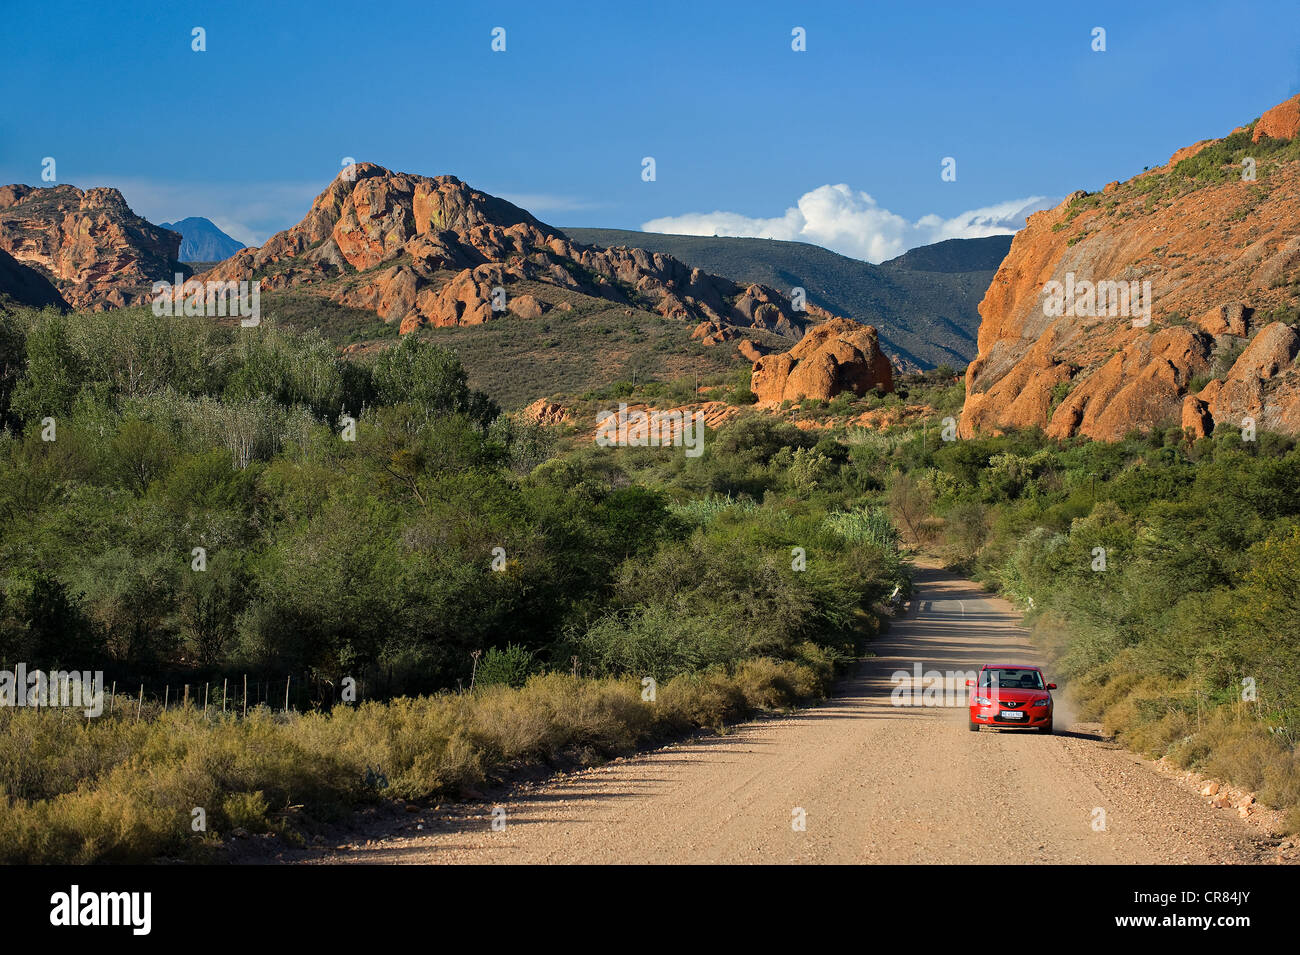 South Africa, Western Cape, Route 62, Garden Route, Little Karoo, Red Hills